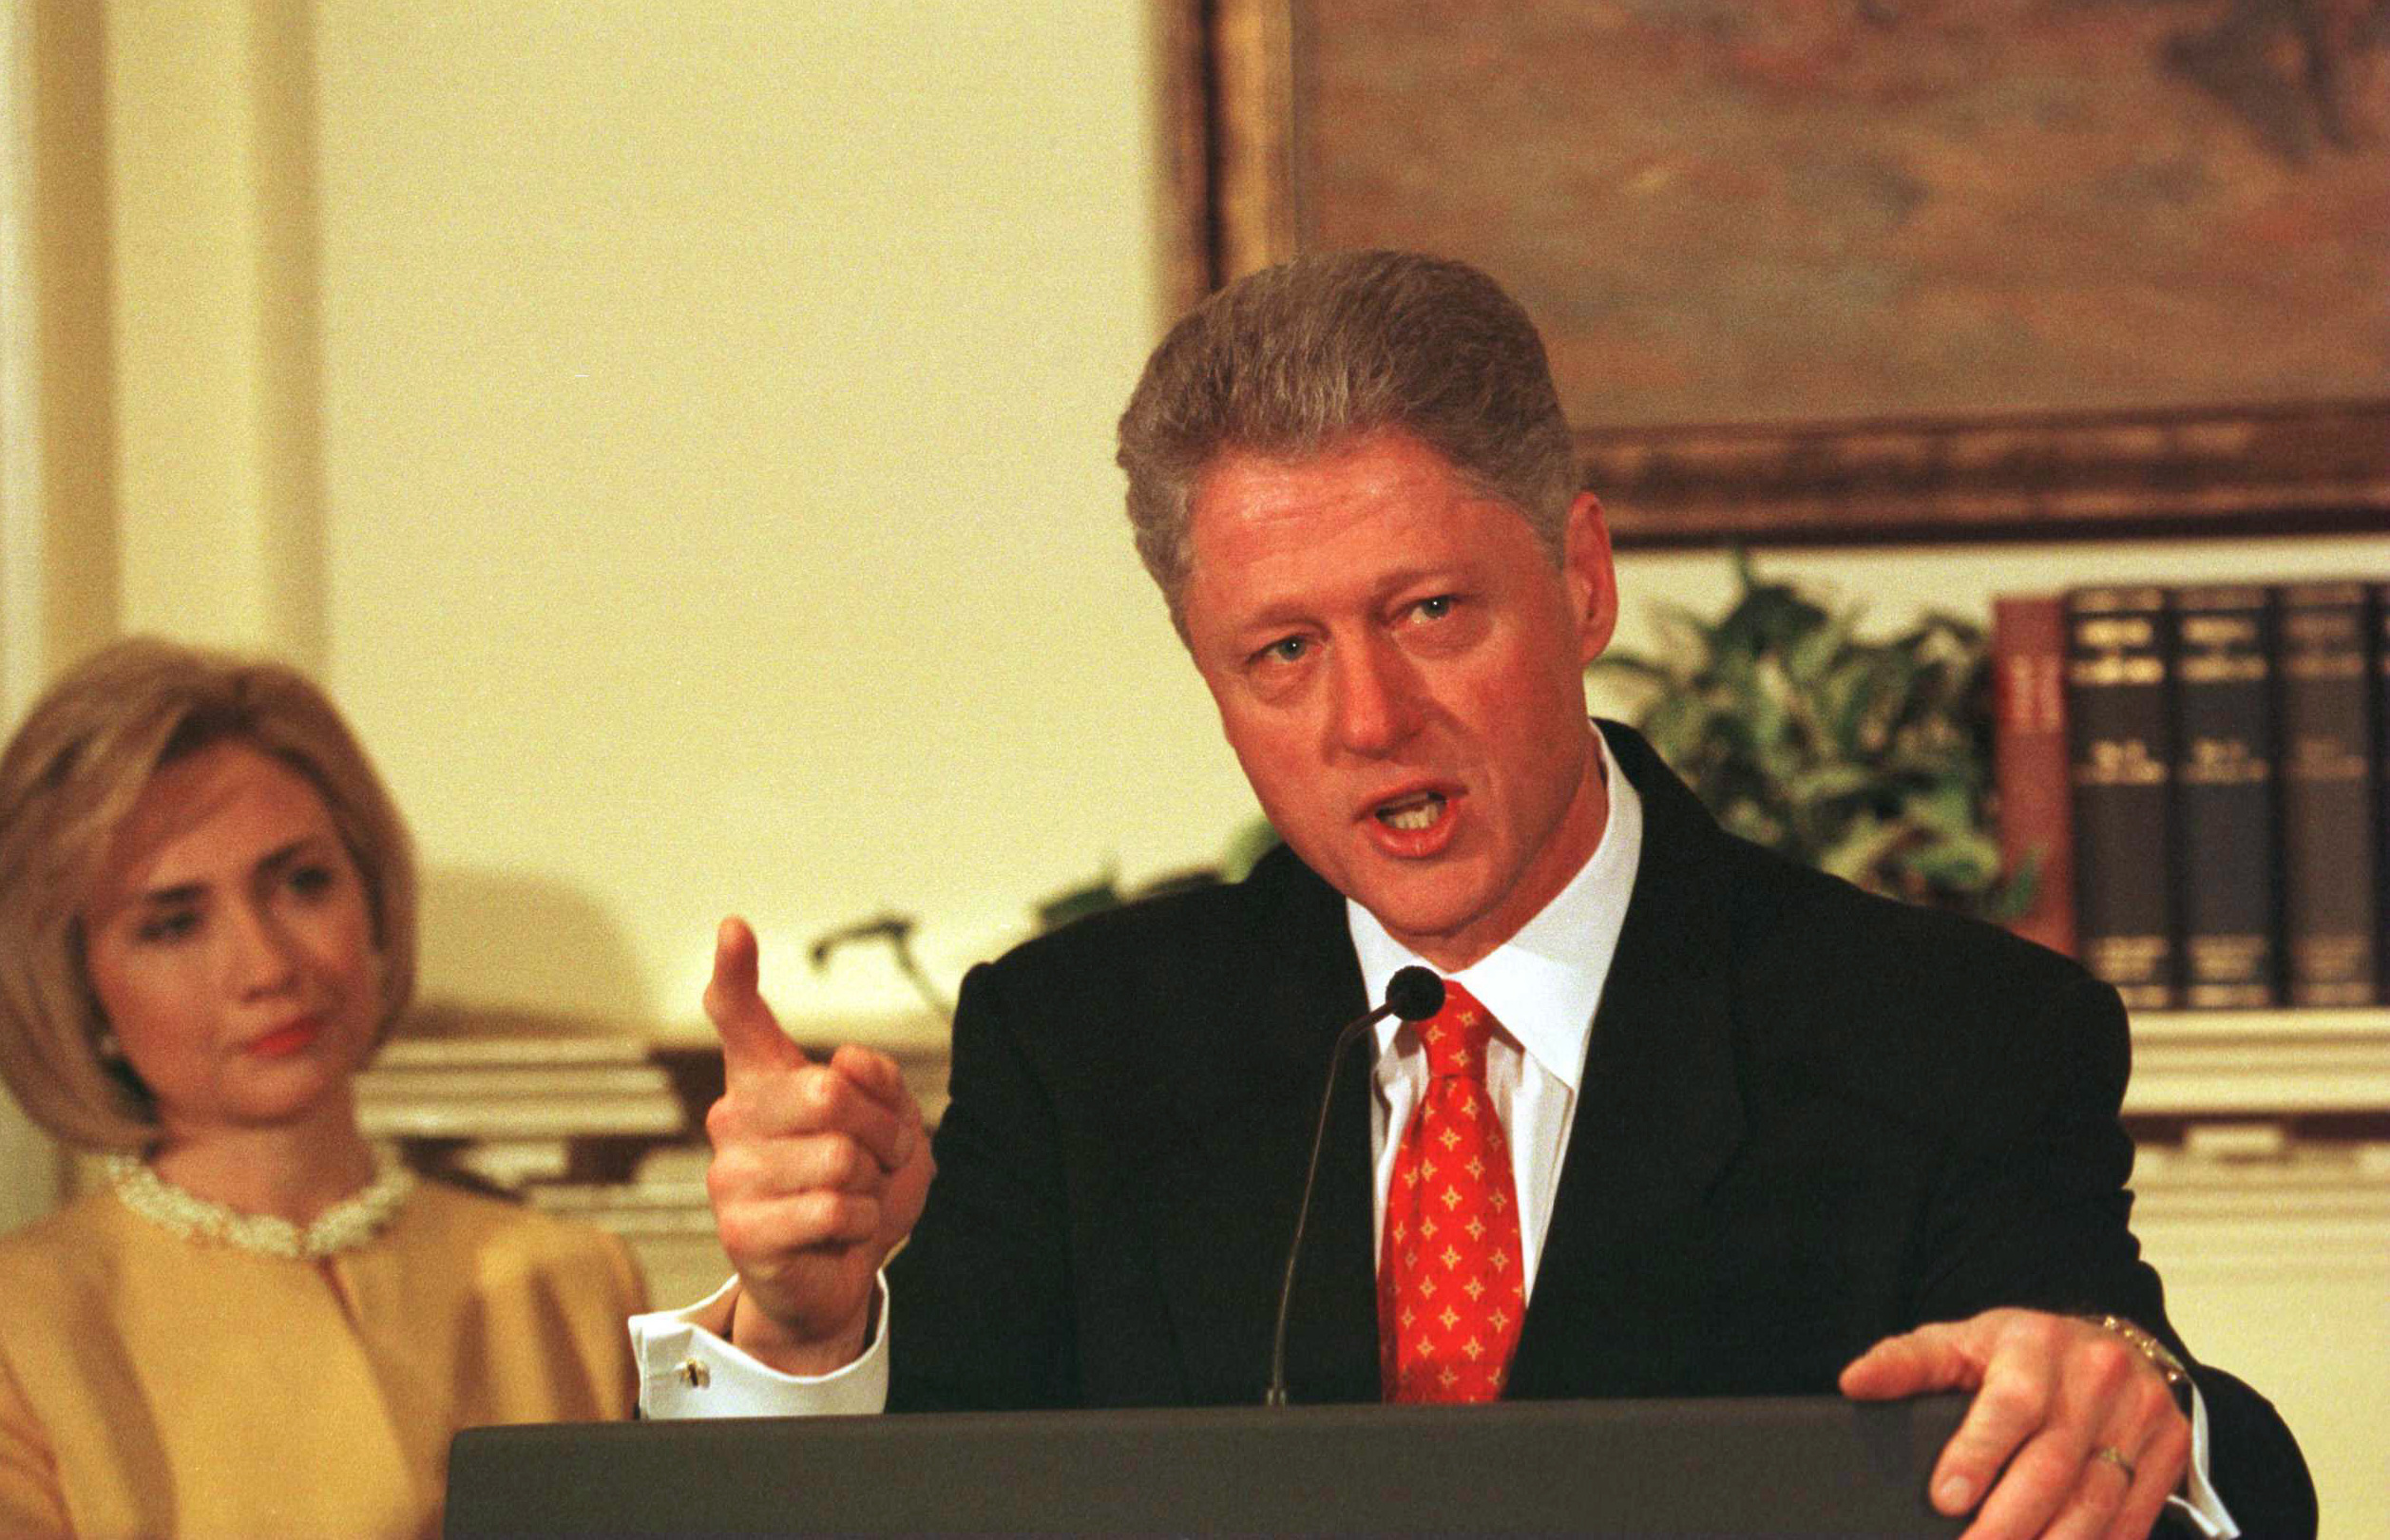 BILL CLINTON DENIES RELATIONS WITH M.LEWINSKY.